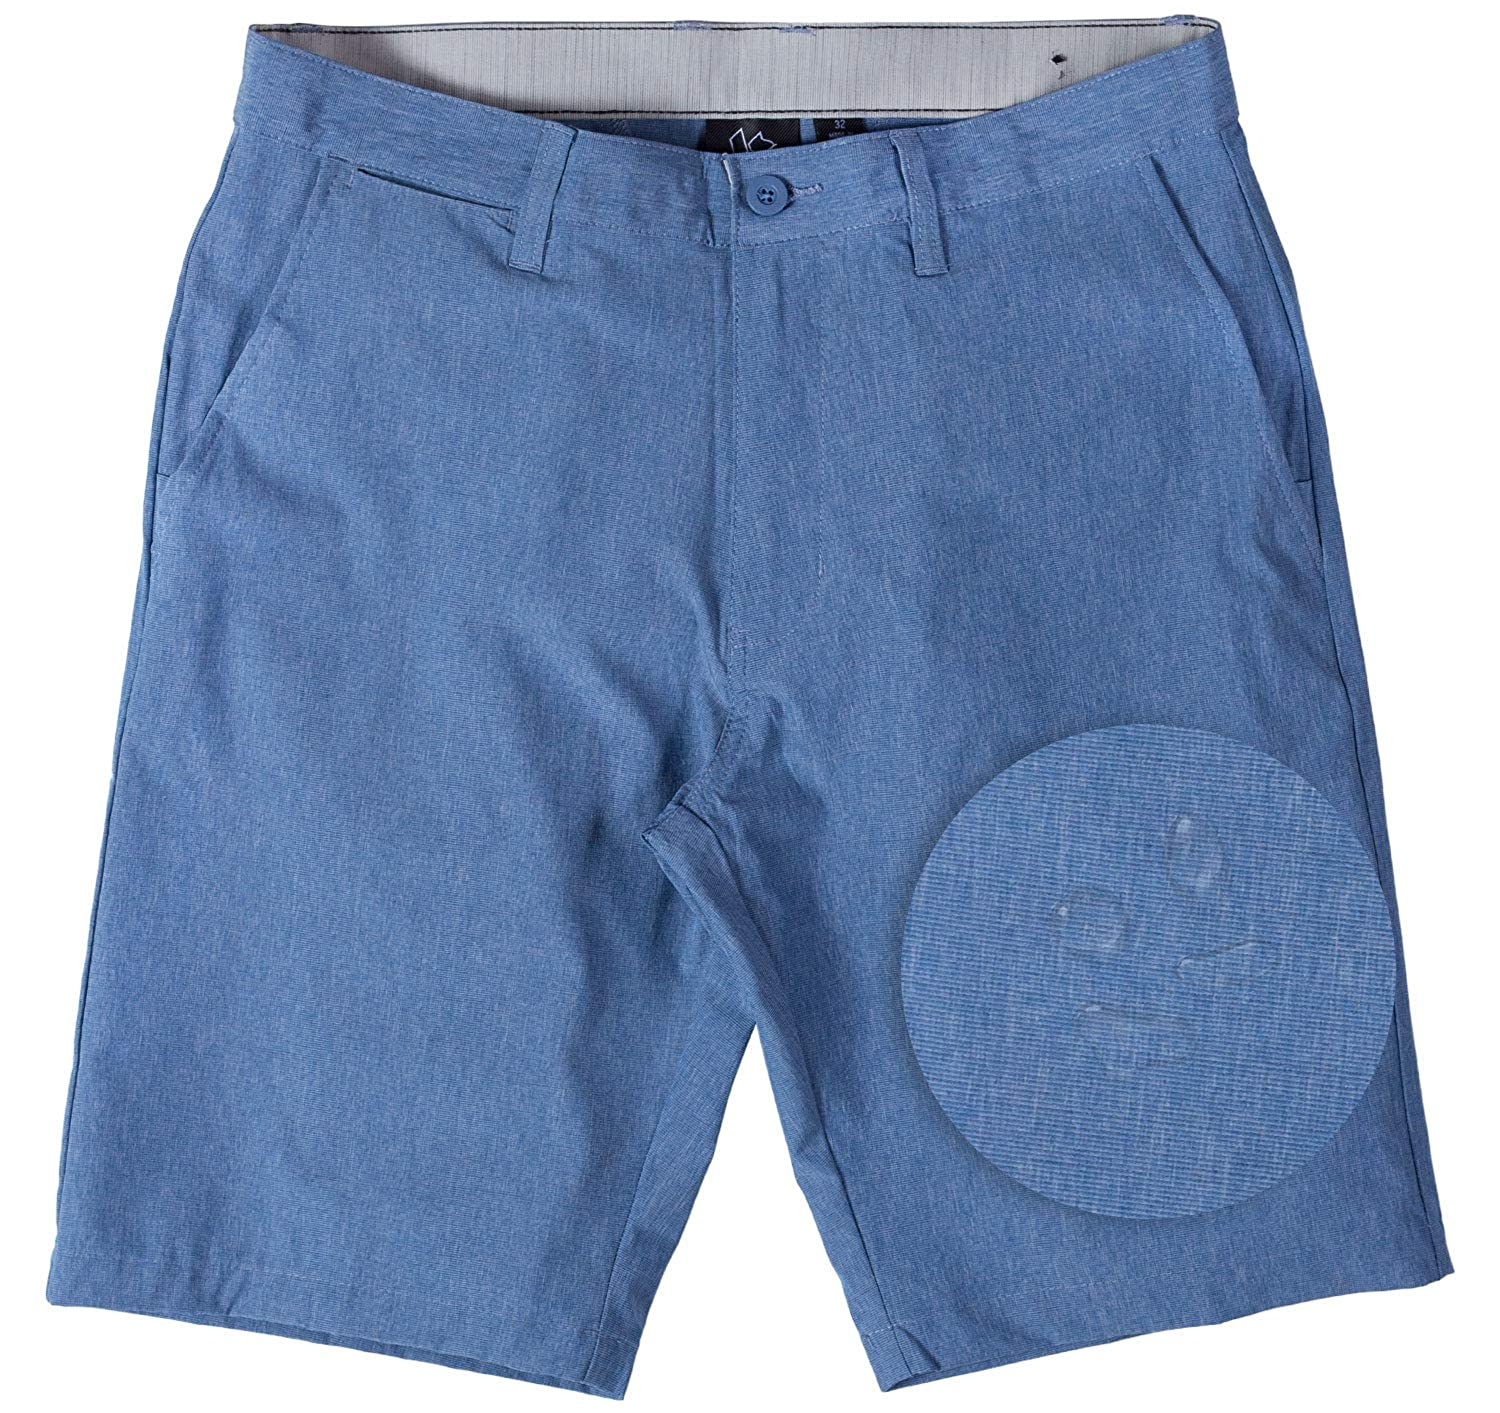 8345d5ebce Amazon.com: Burnside Hybrid Stretch Shorts for Mens Lightweight Boardshorts  Grey: Clothing